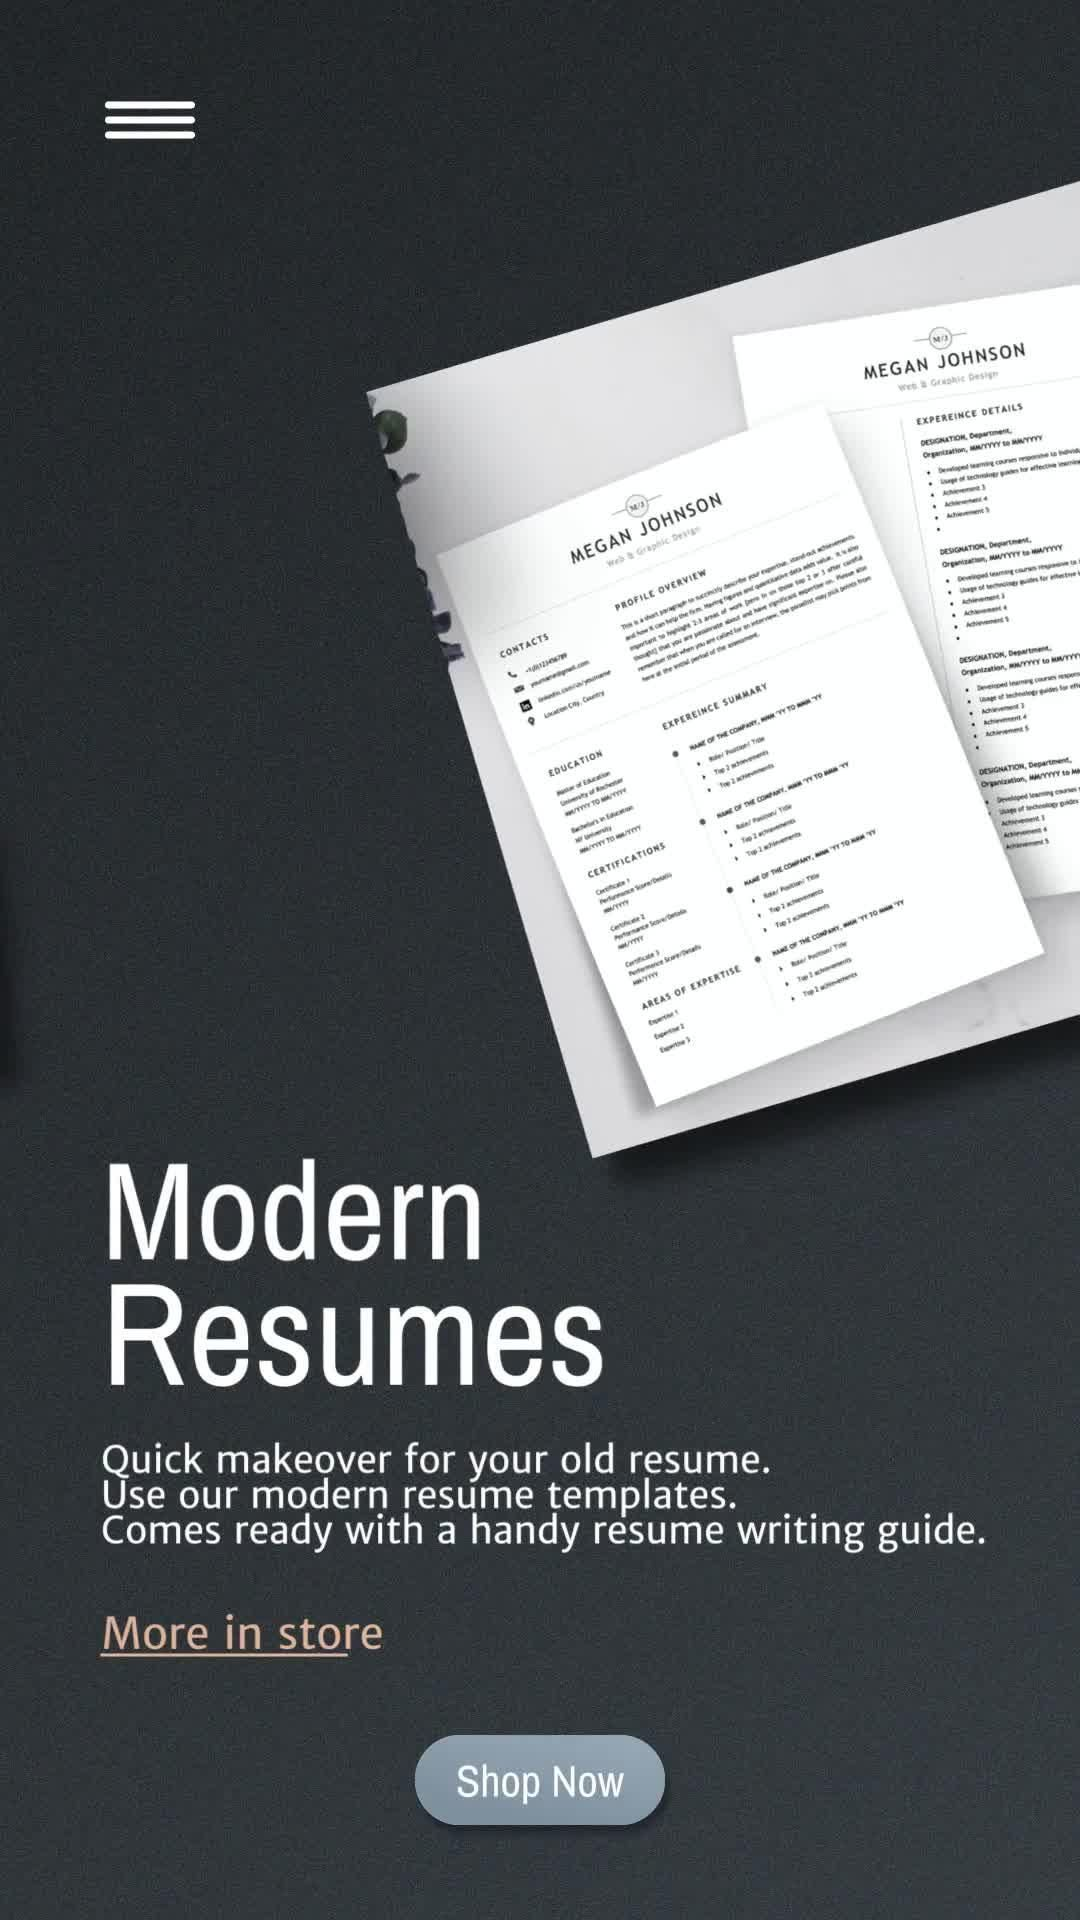 The average job has over 200 applications and a recruiter